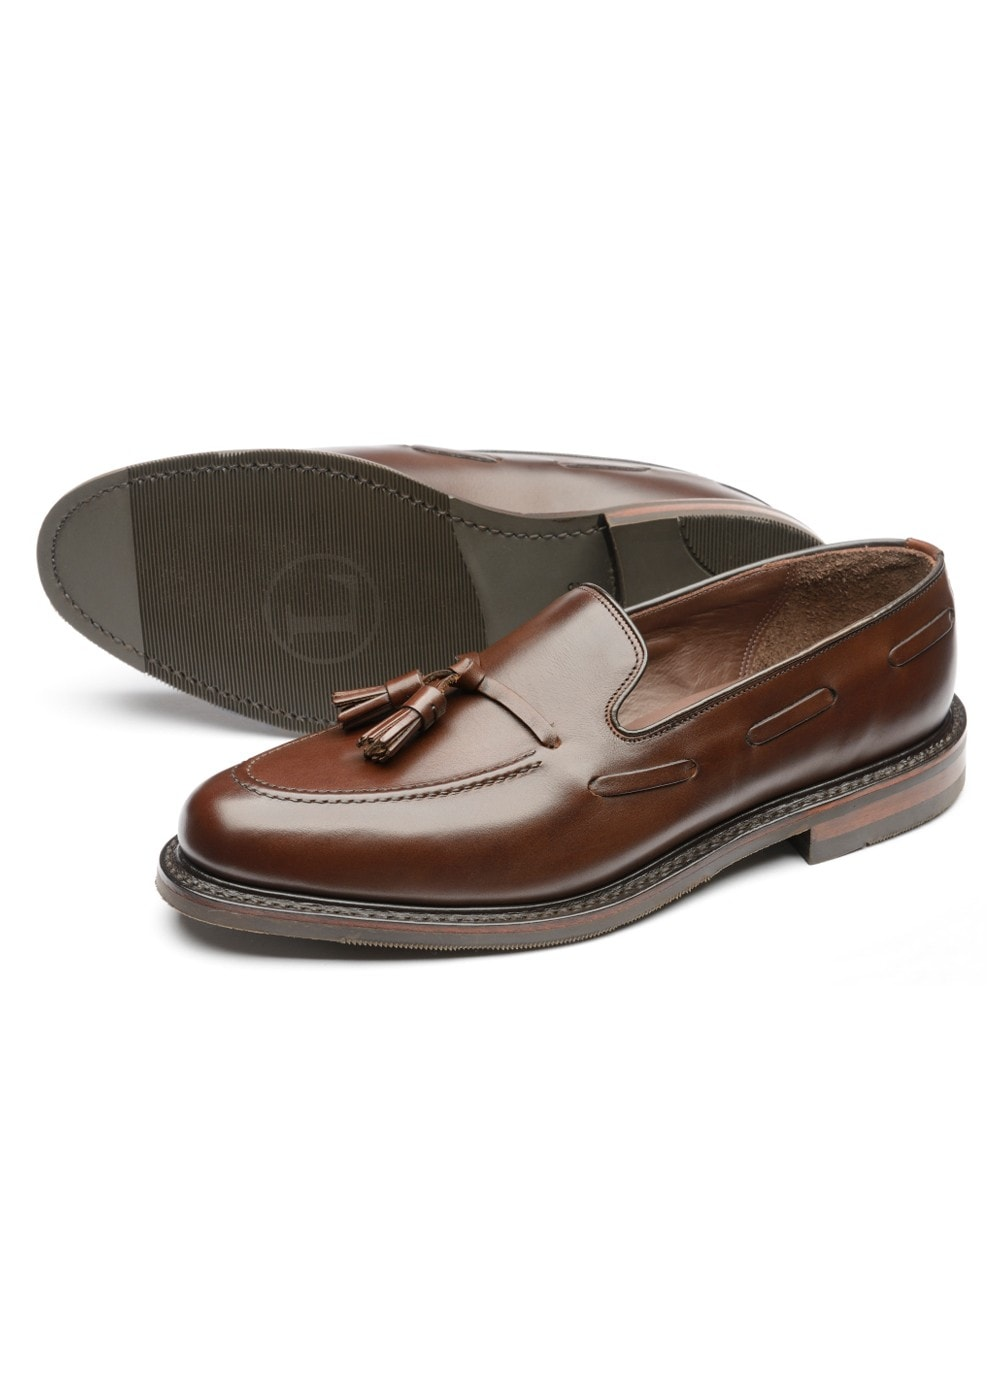 Loake Nottingham Shoes - Mens from A